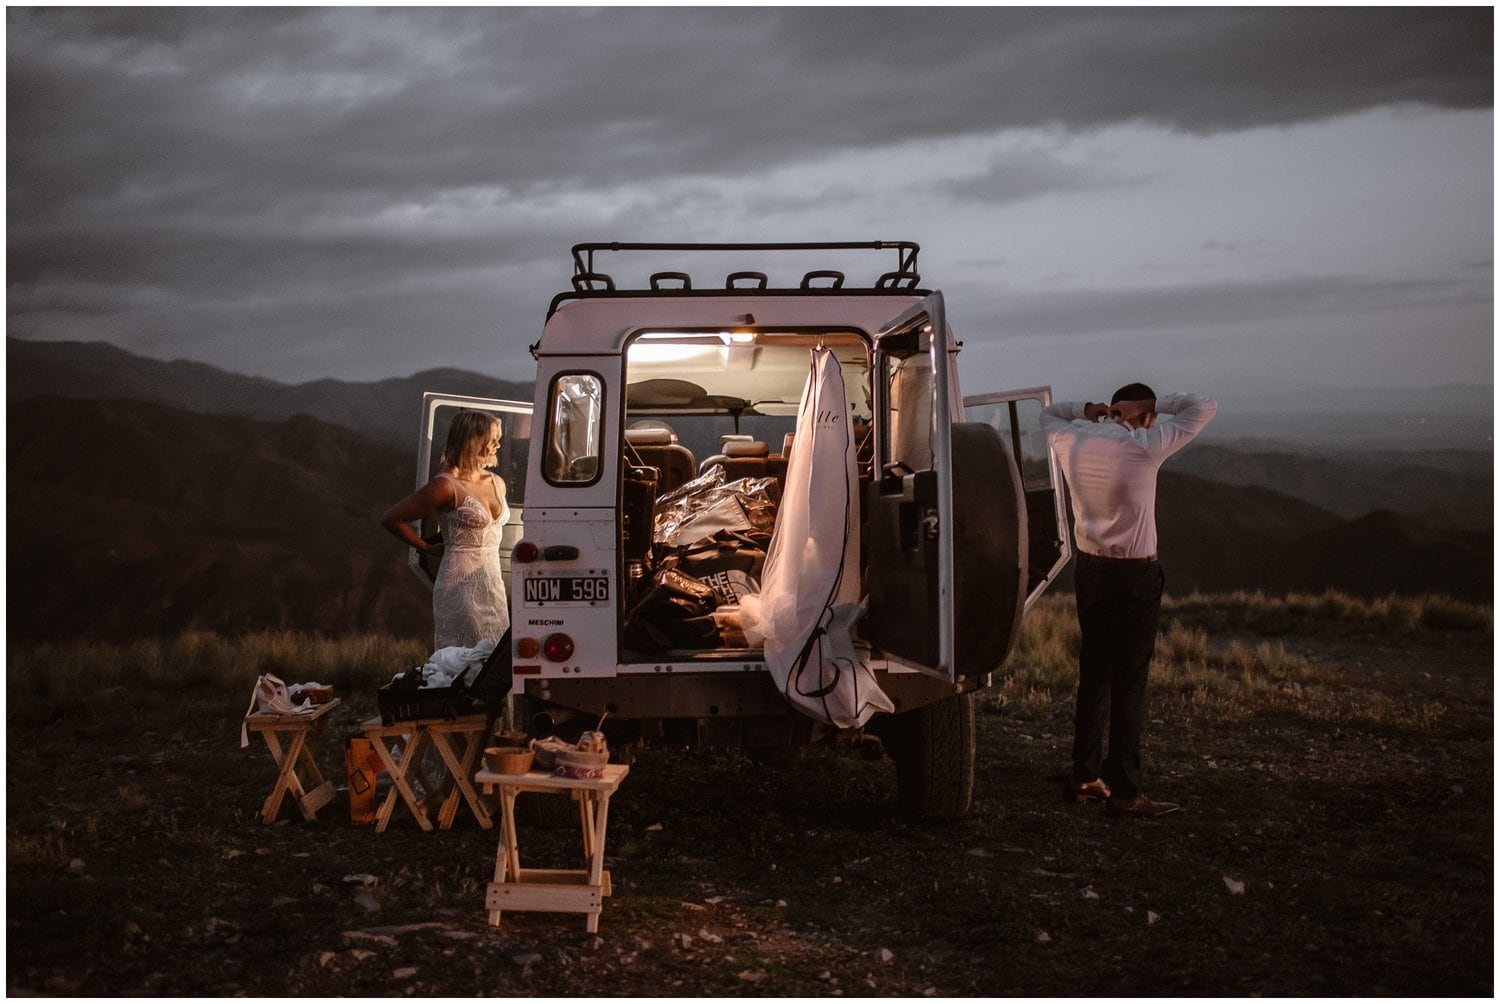 A bride and groom get ready on either side of a camper van in the early morning.